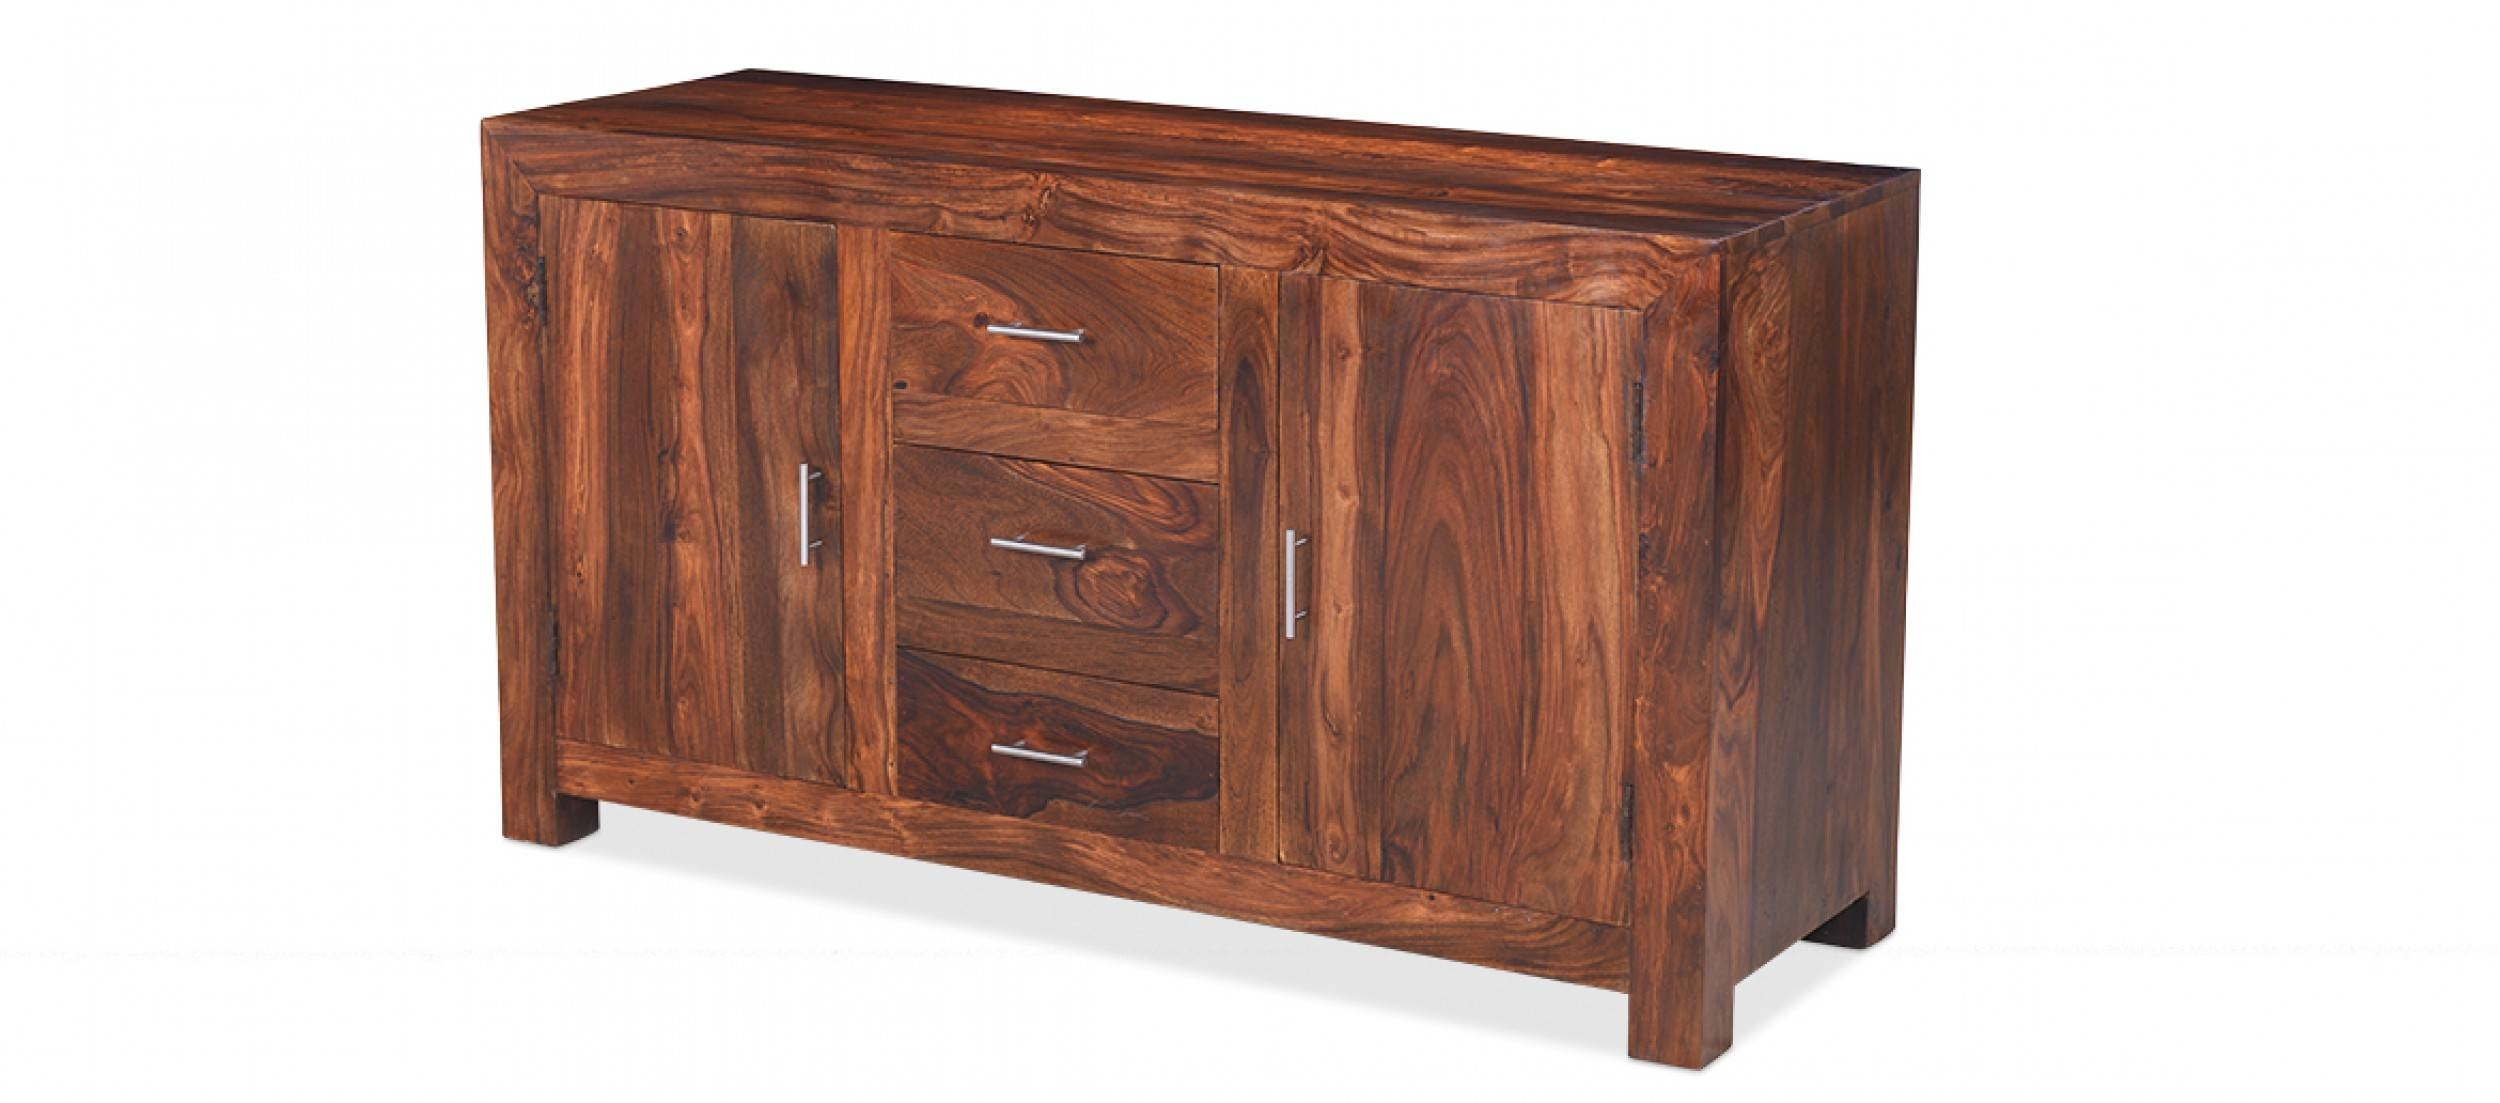 Cube Sheesham Large Sideboard | Quercus Living intended for Sheesham Sideboards (Image 4 of 30)